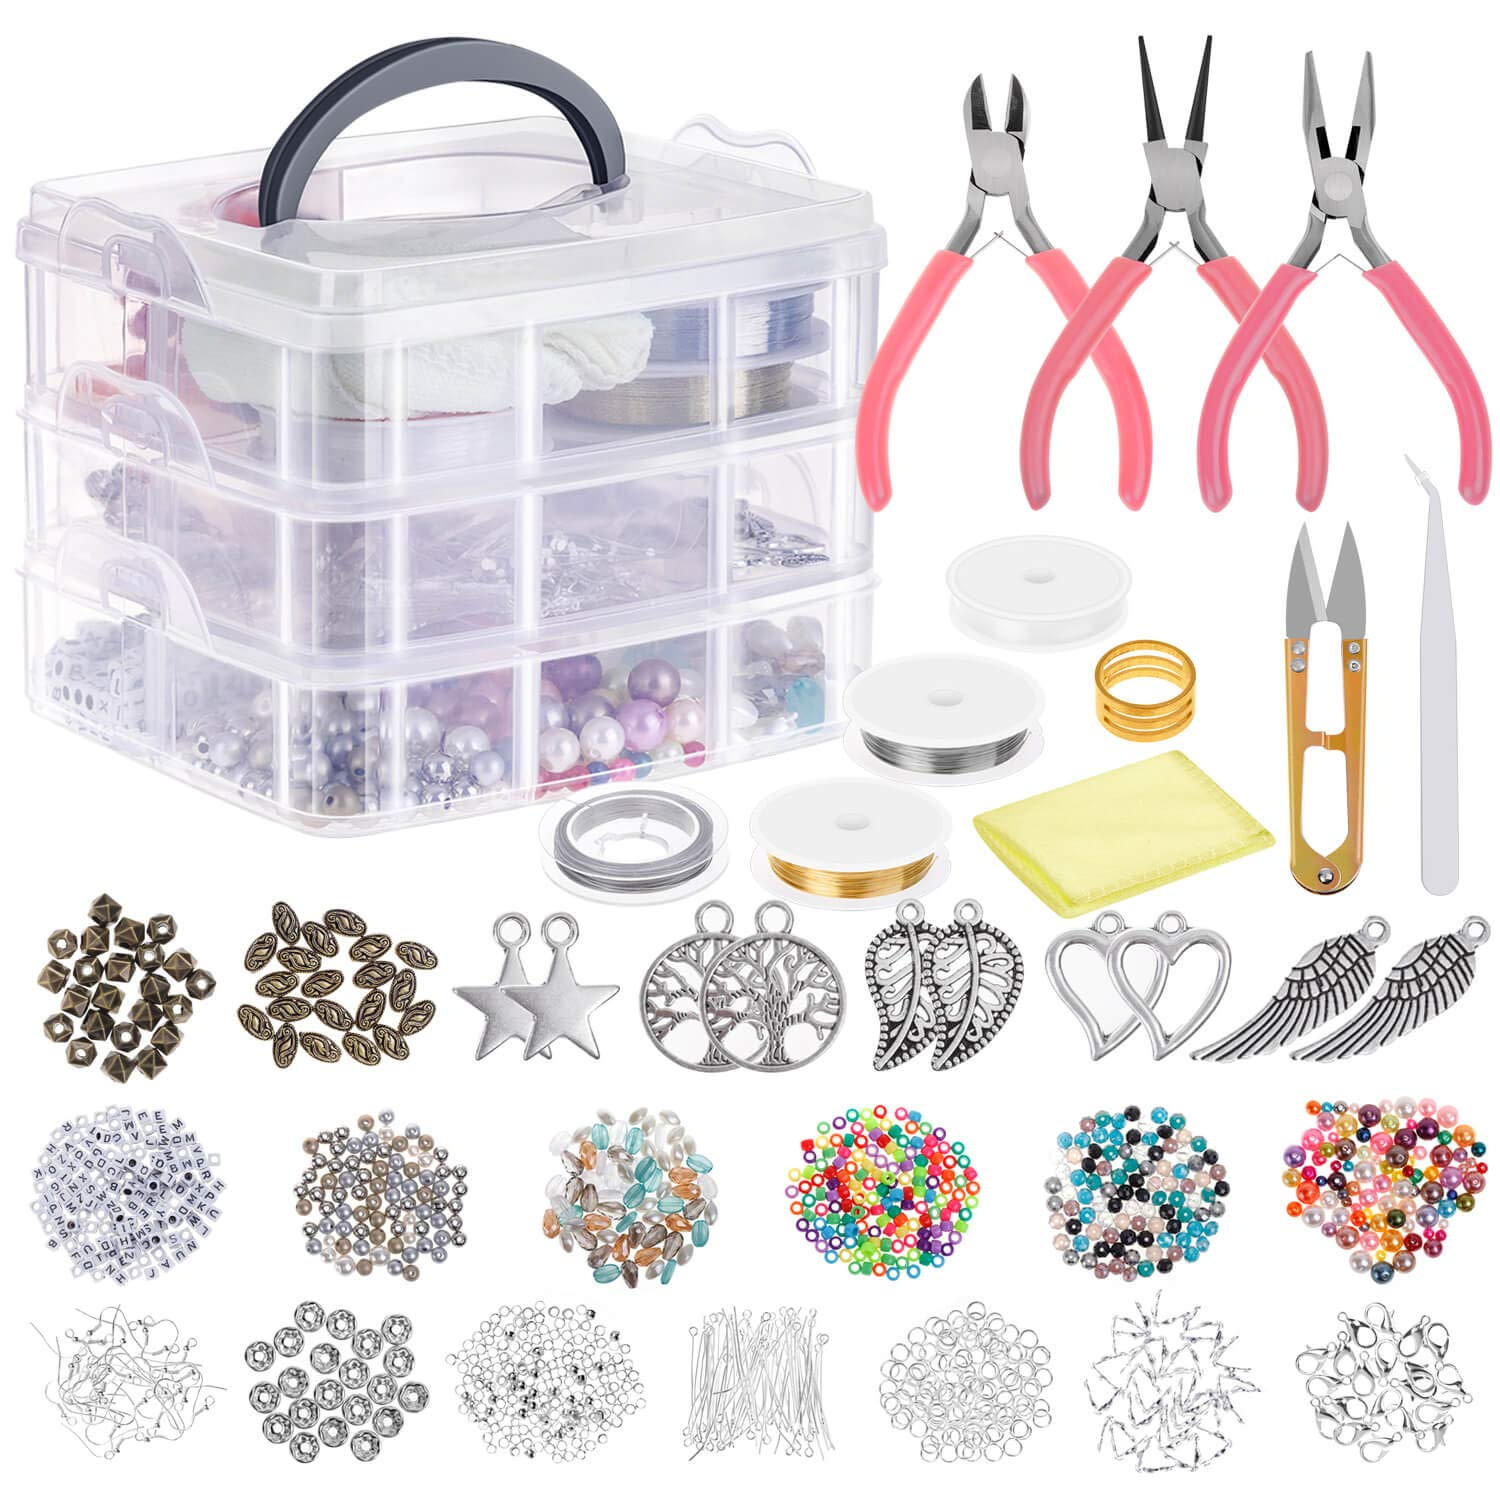 Jewelry Making Supplies, Cridoz Jewelry Making Tools Kit with Jewelry Pliers, Beading Wire, Jewelry Beads and Charms Findings for Jewelry Necklace Earring Bracelet Making Repair by cridoz